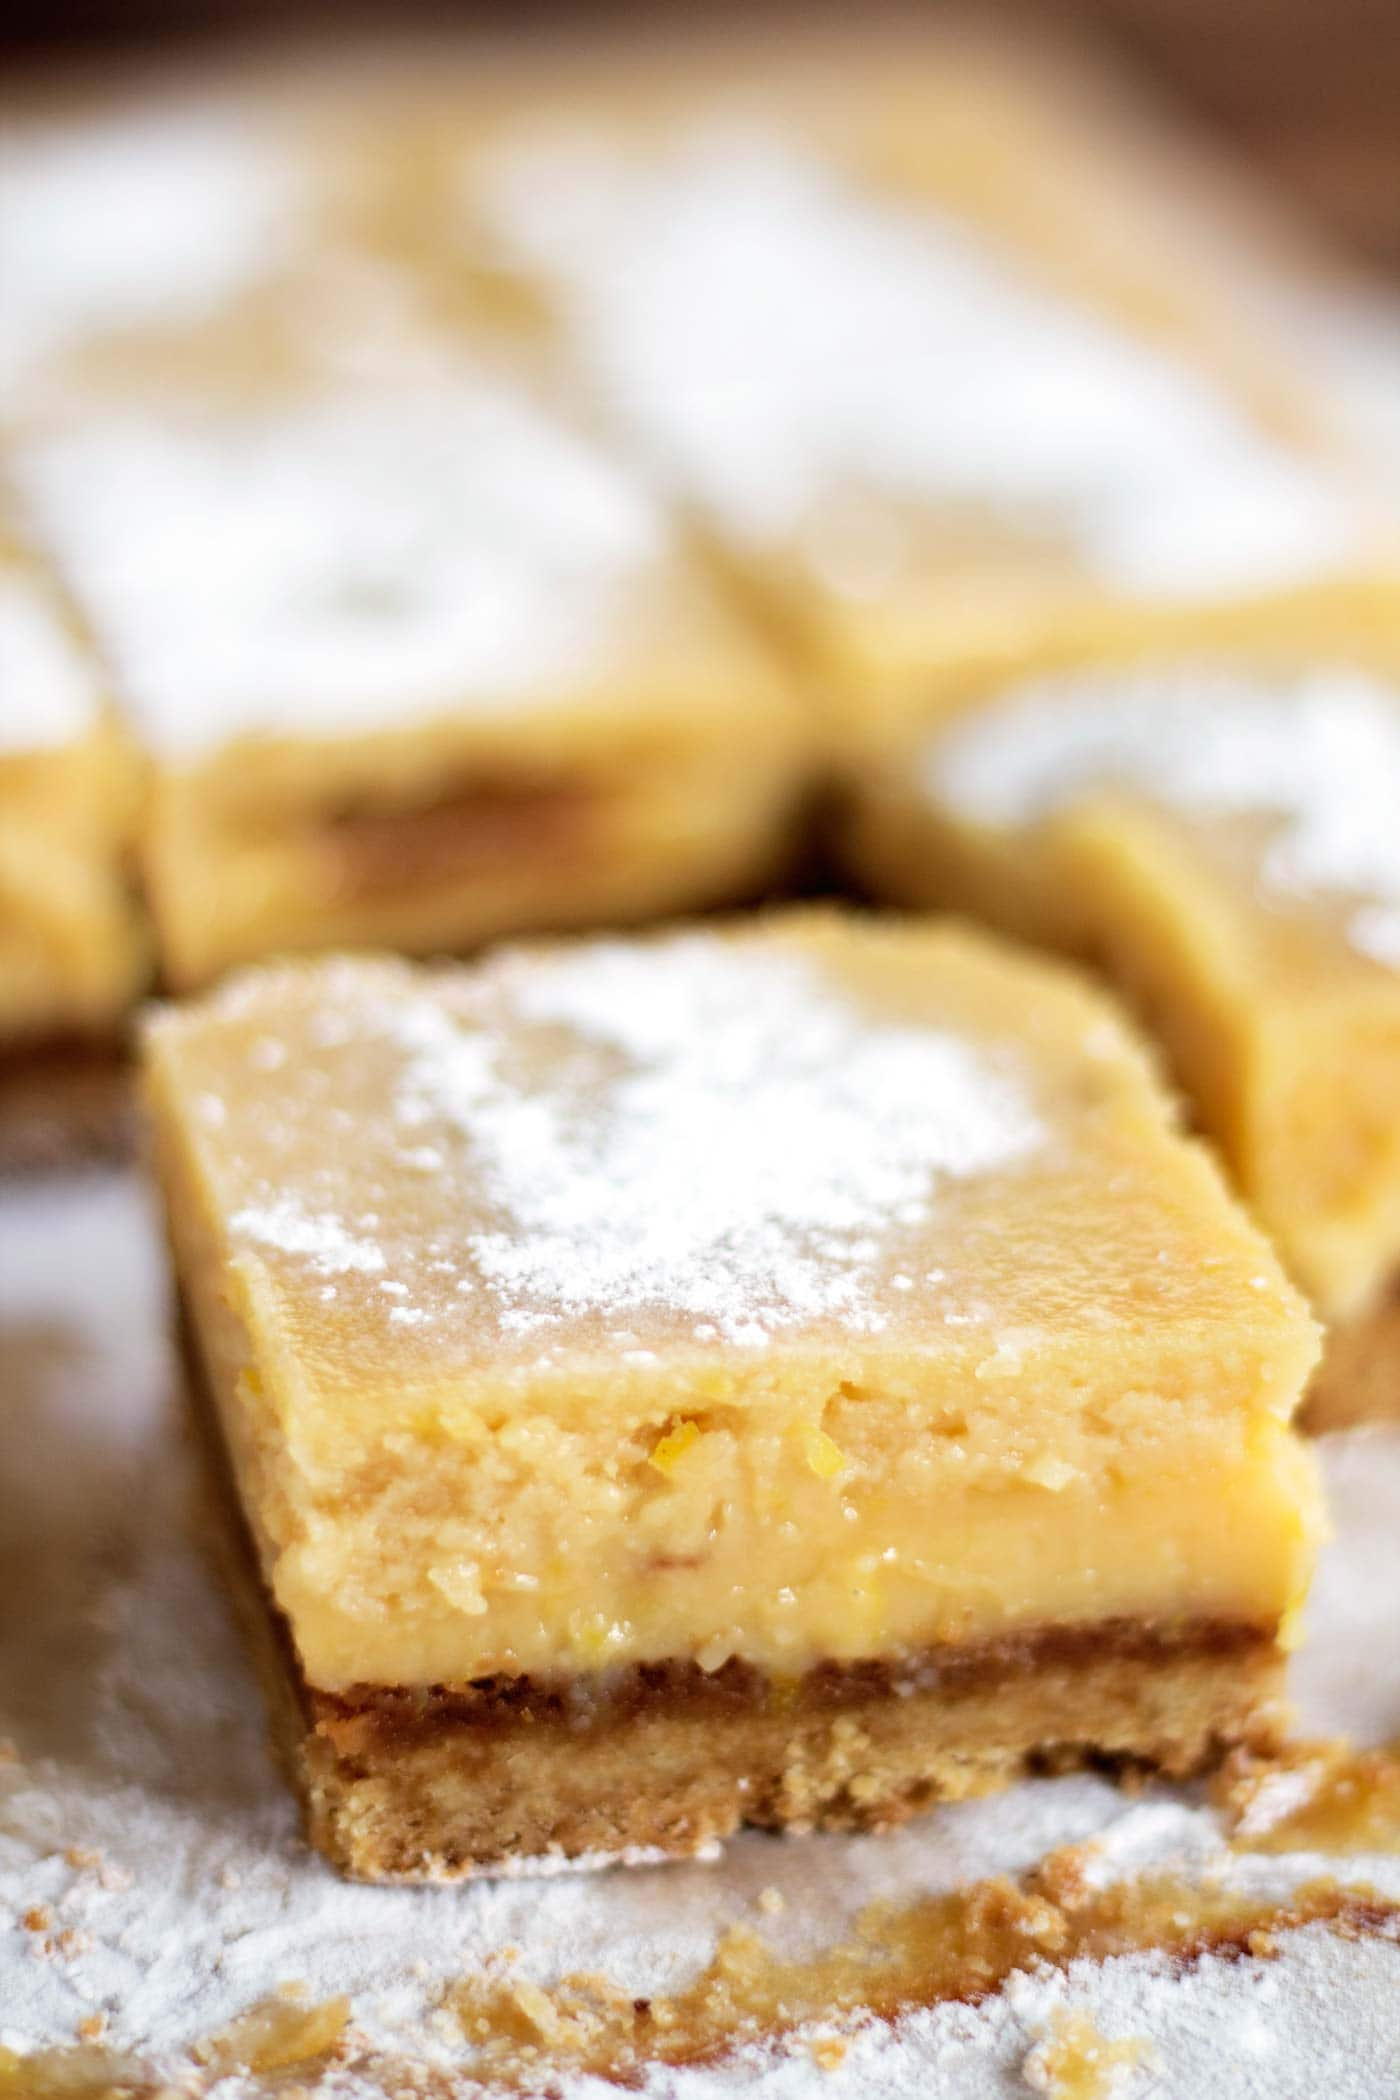 So easy to make! These lemon bars are paleo, gluten free, dairy free, and naturally sweetened with honey and coconut sugar!